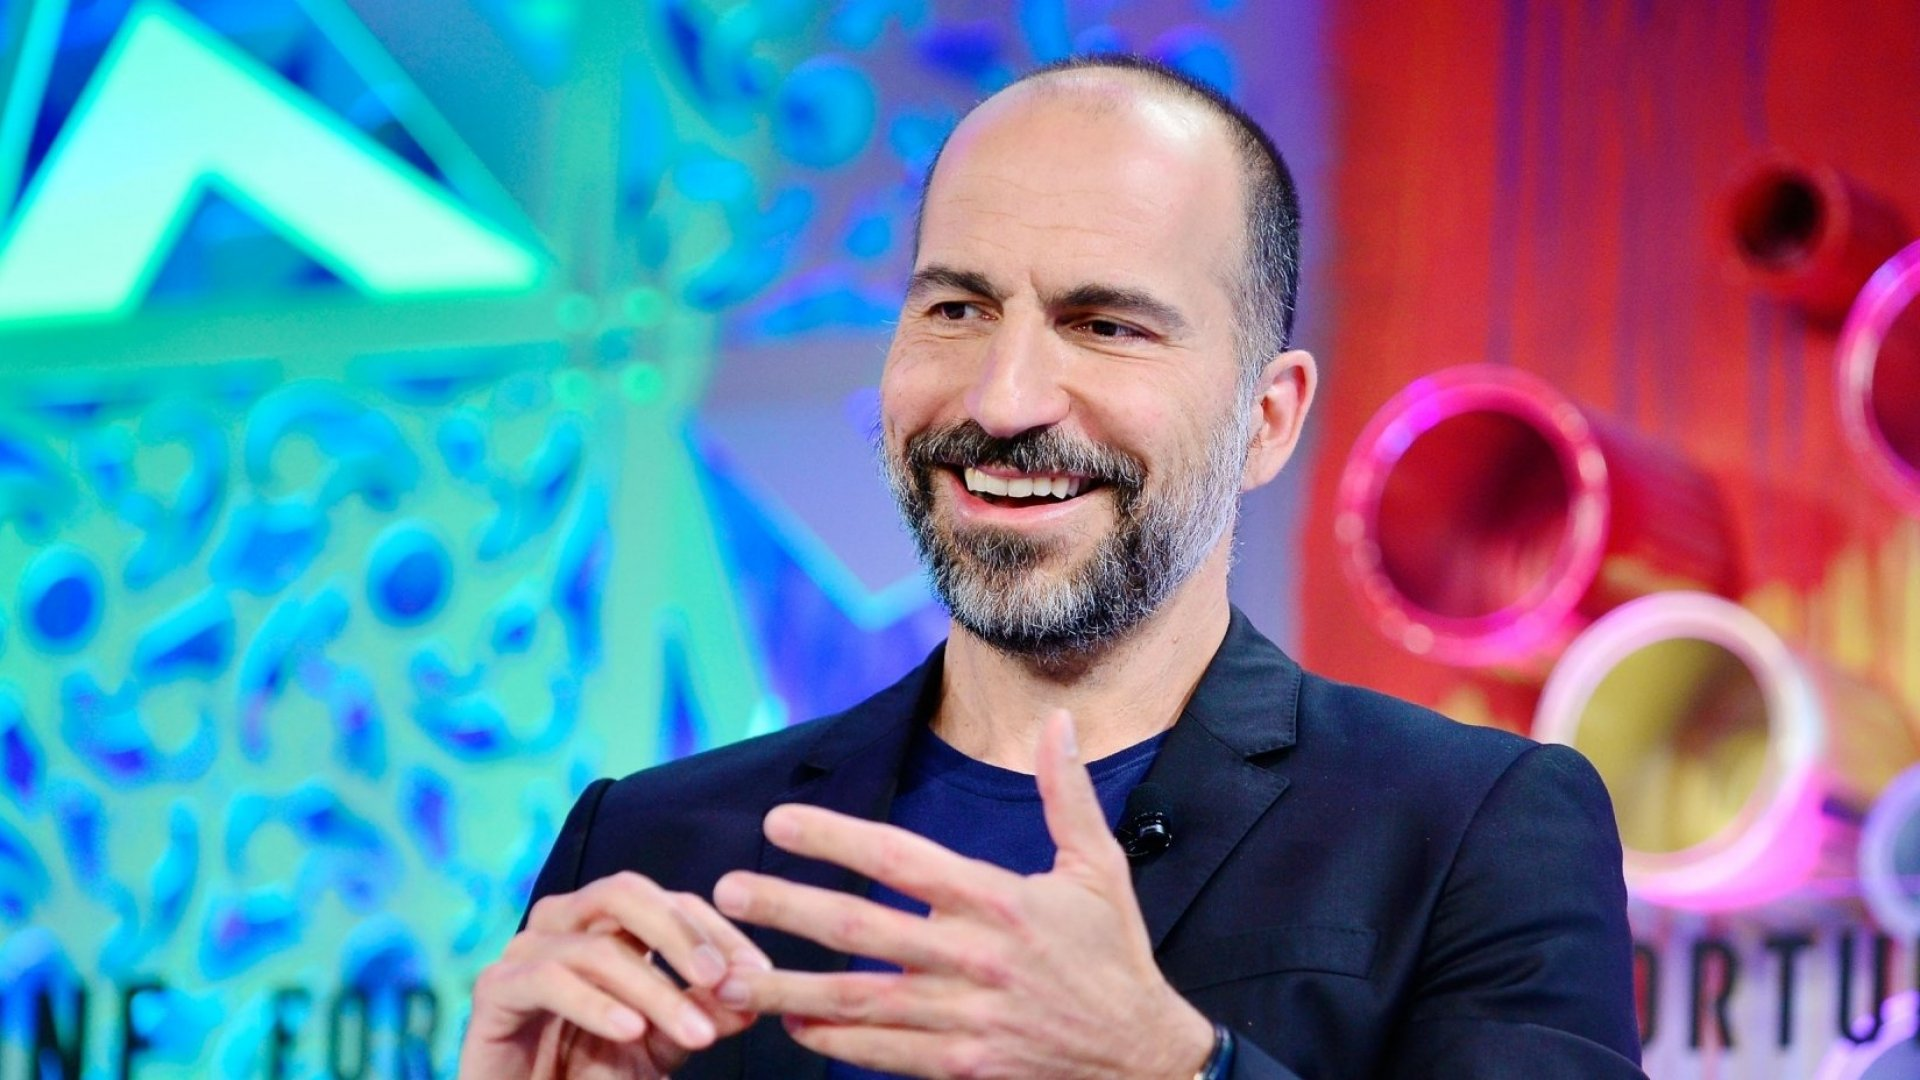 Uber Reports $1 Billion in Losses as CEO Downplays IPO Flop